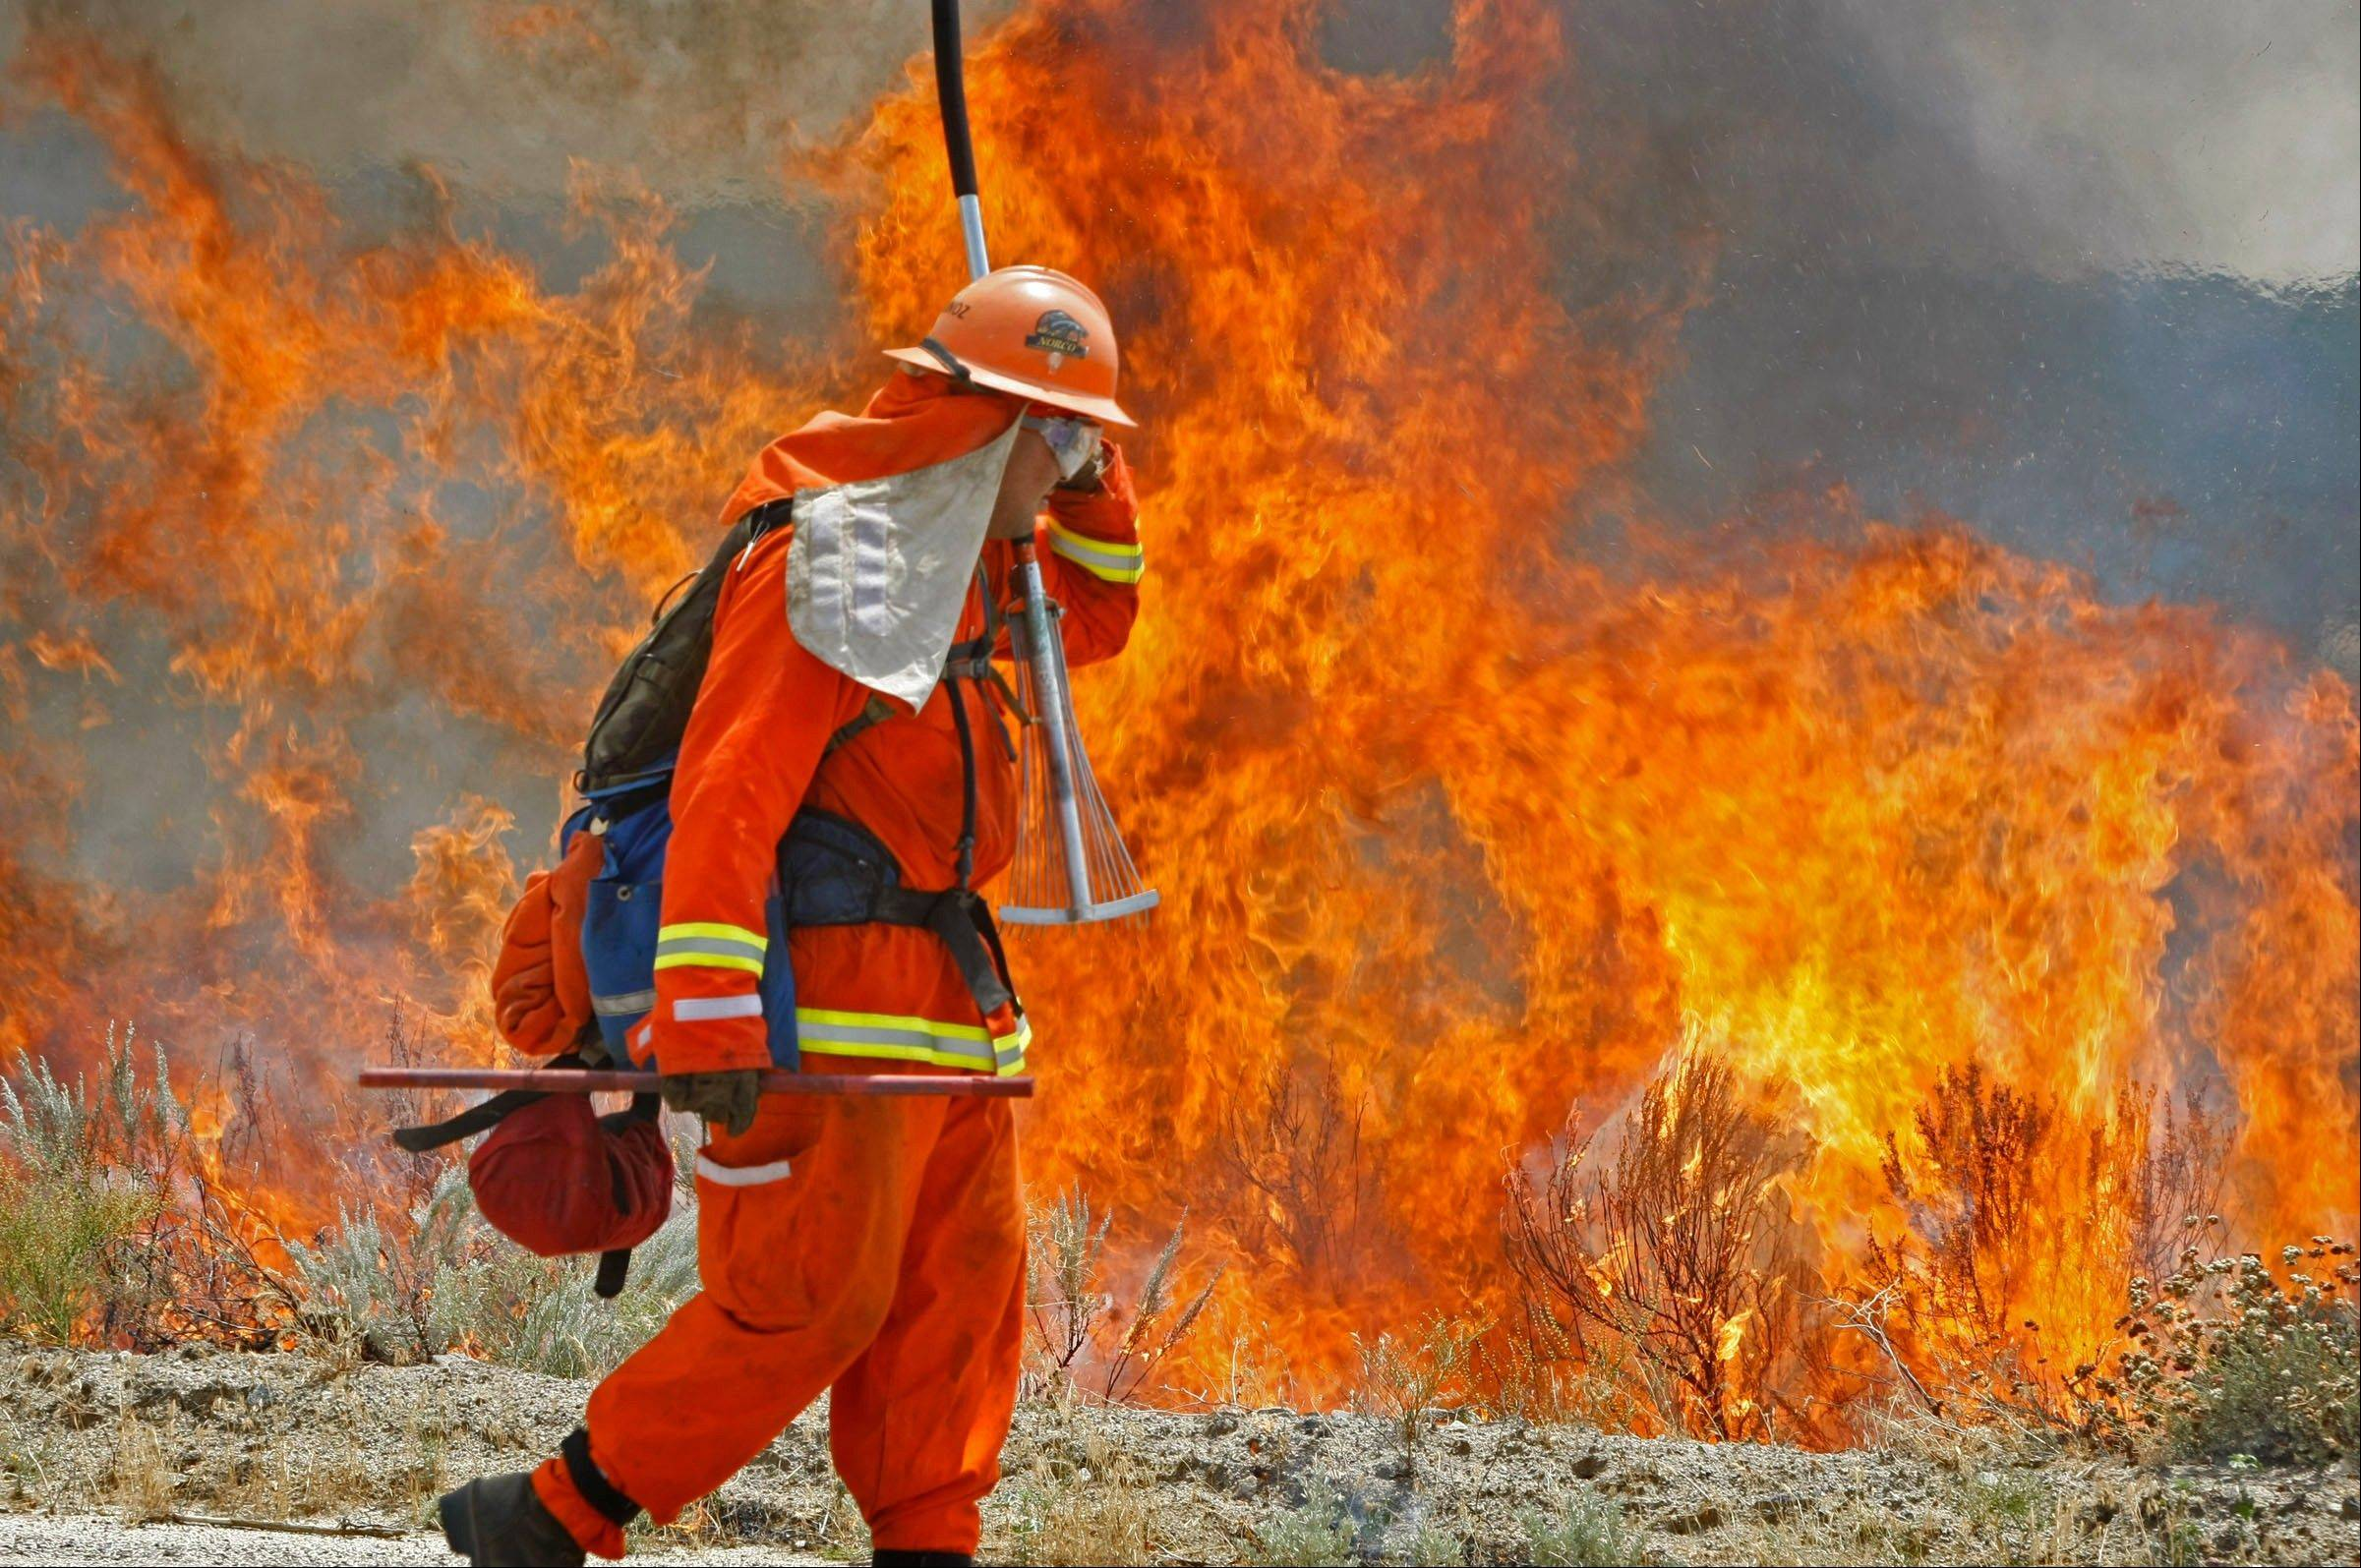 A firefighter from the Norco Conservation Camp shields his face against the heat of a backfire his crew intentionally set along Montezuma Valley road in Ranchita, Calif. on Thrusday, Aug 15, 2012. The backfire was set to stop the approaching wildfire burning through the Anza-Borrego Desert State Park in northern San Diego County.